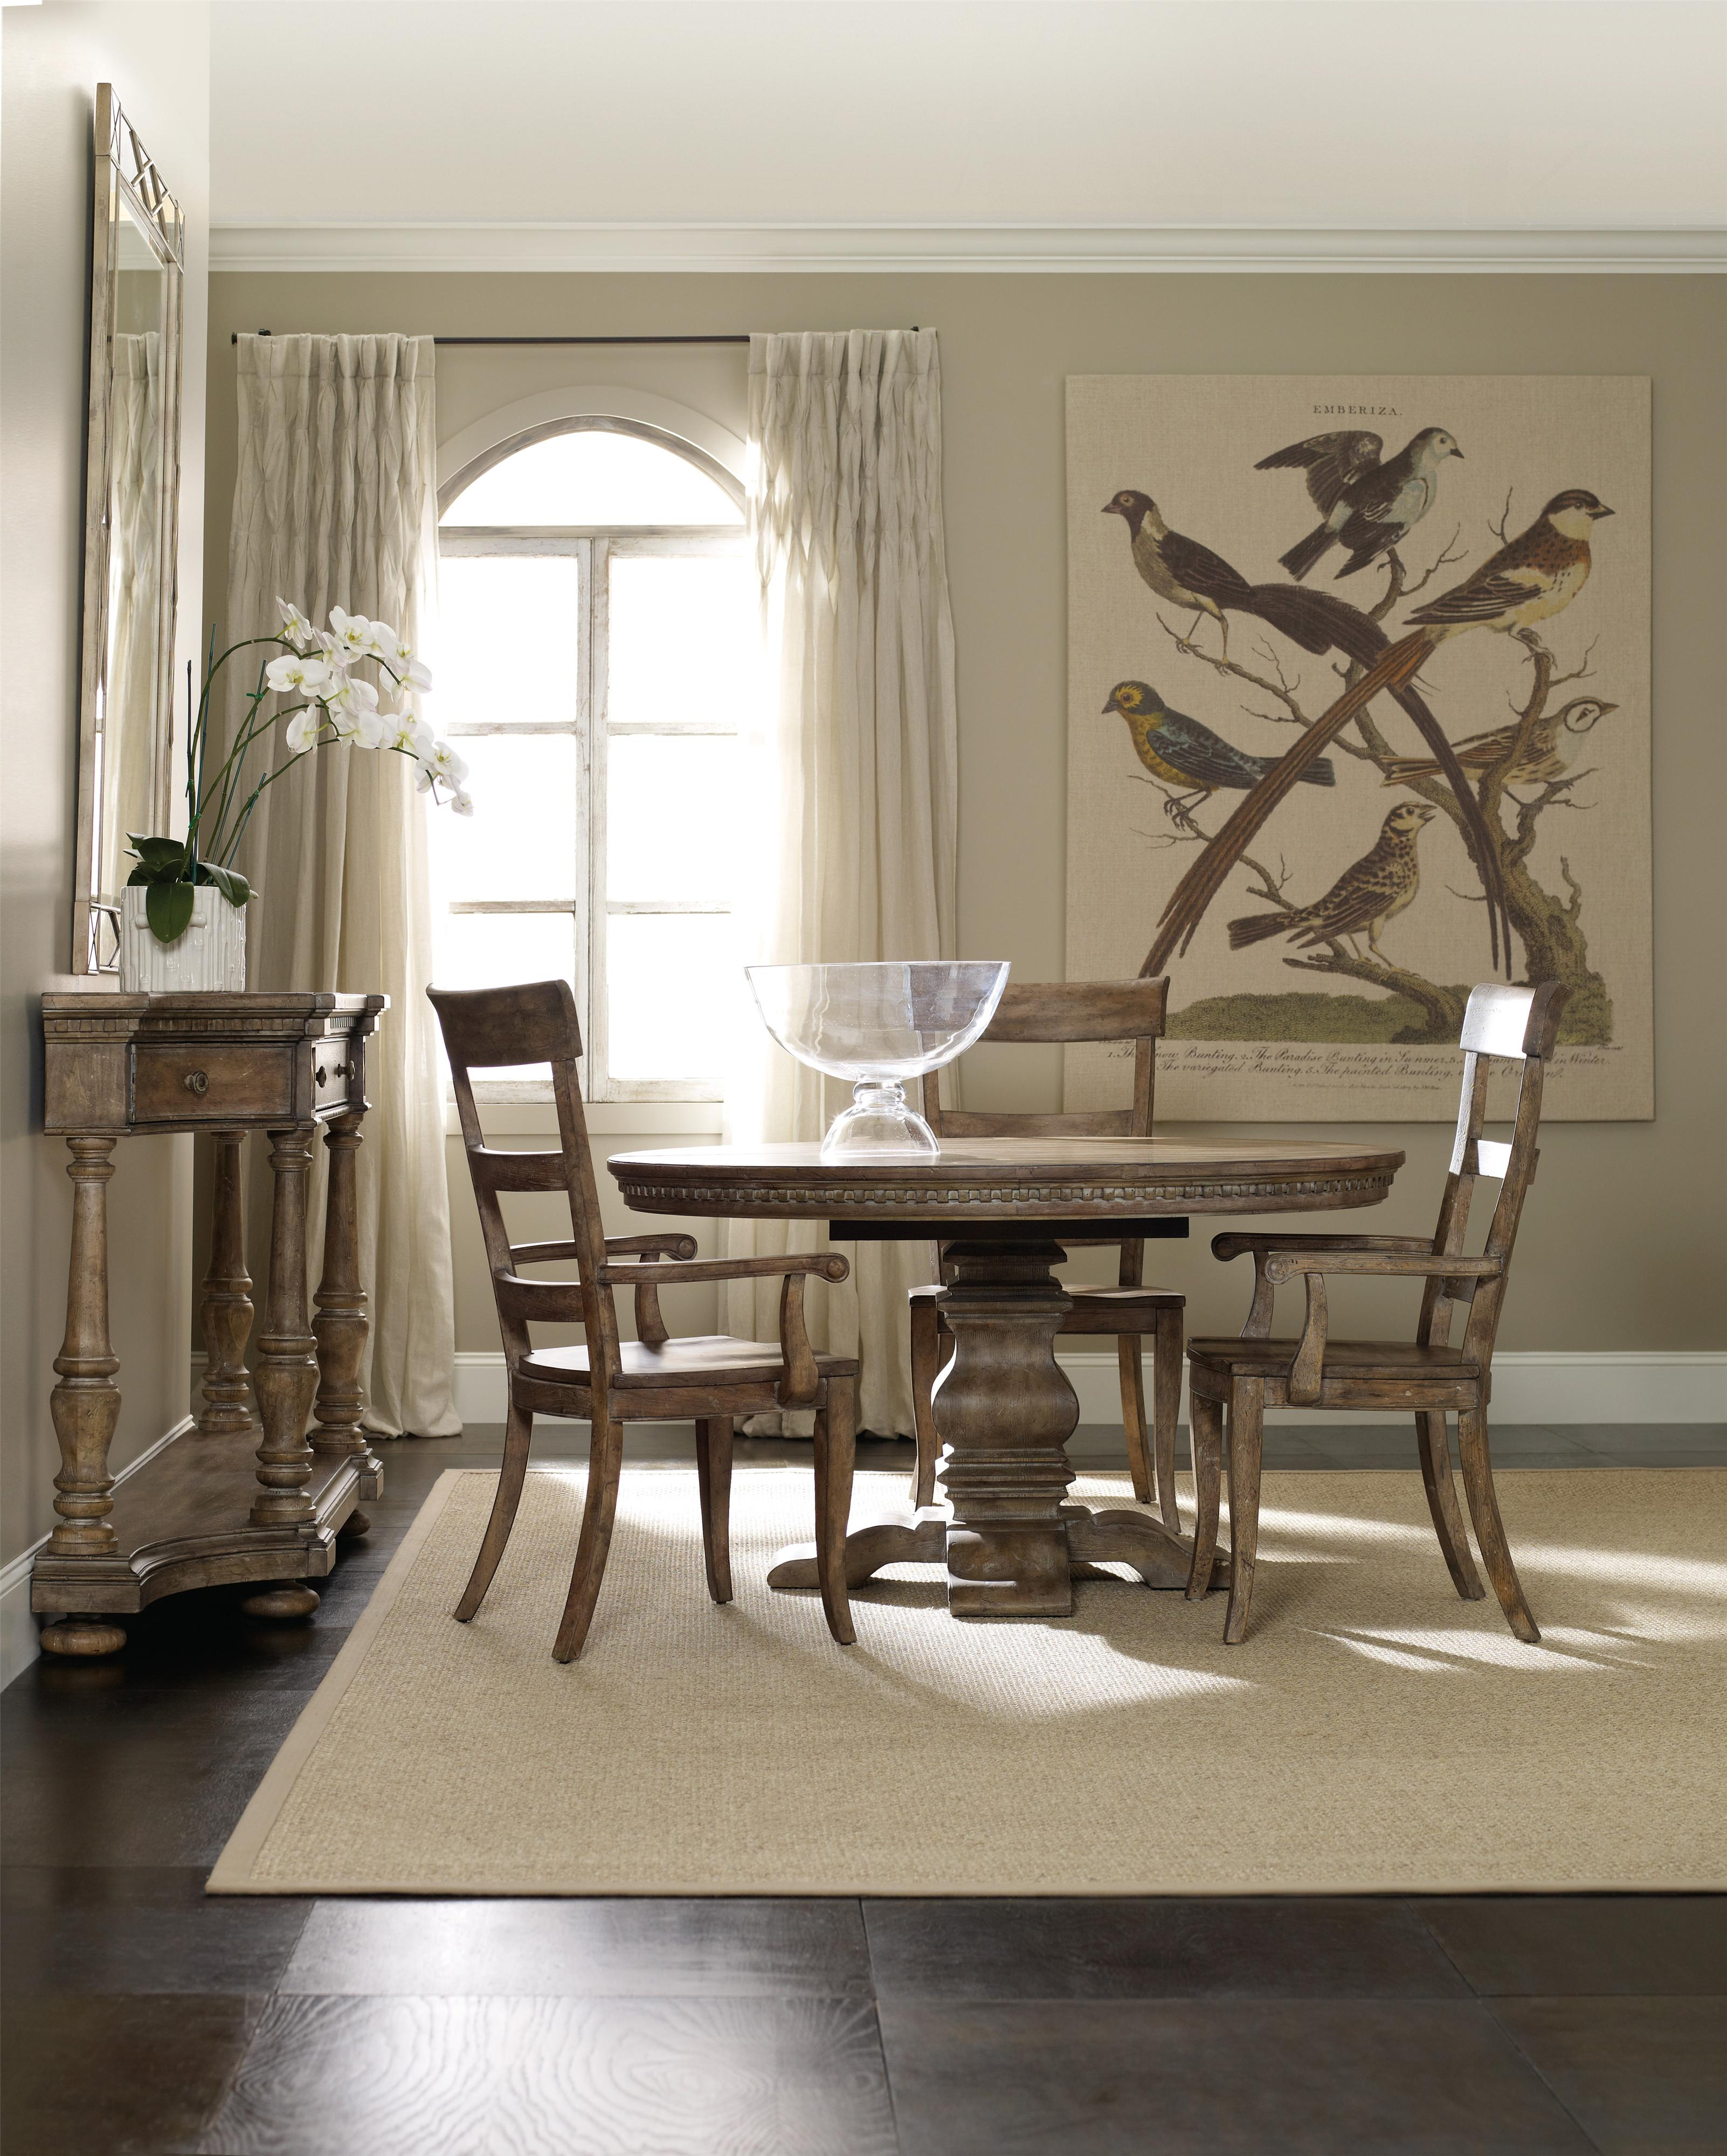 5pc Round Pedestal Drop Leaf Kitchen Table 4 Chairs: Hooker Furniture Sorella Round Dining Table With Pedestal